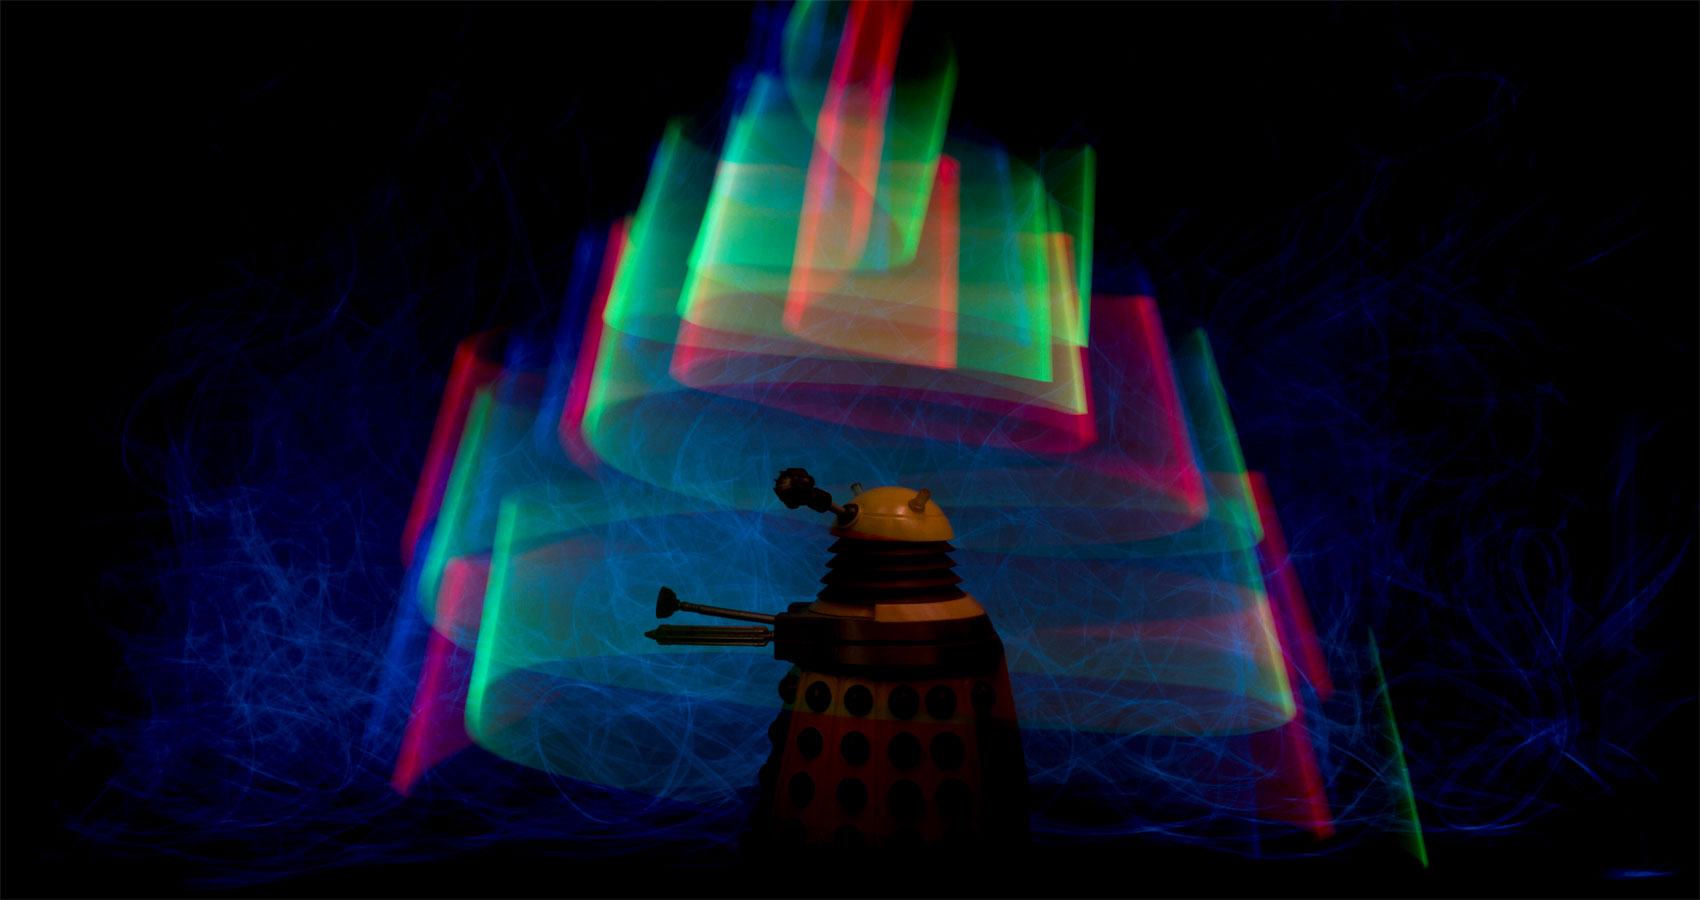 Dalek, a poem written by Ricky Hawthorne at Spillwords.com